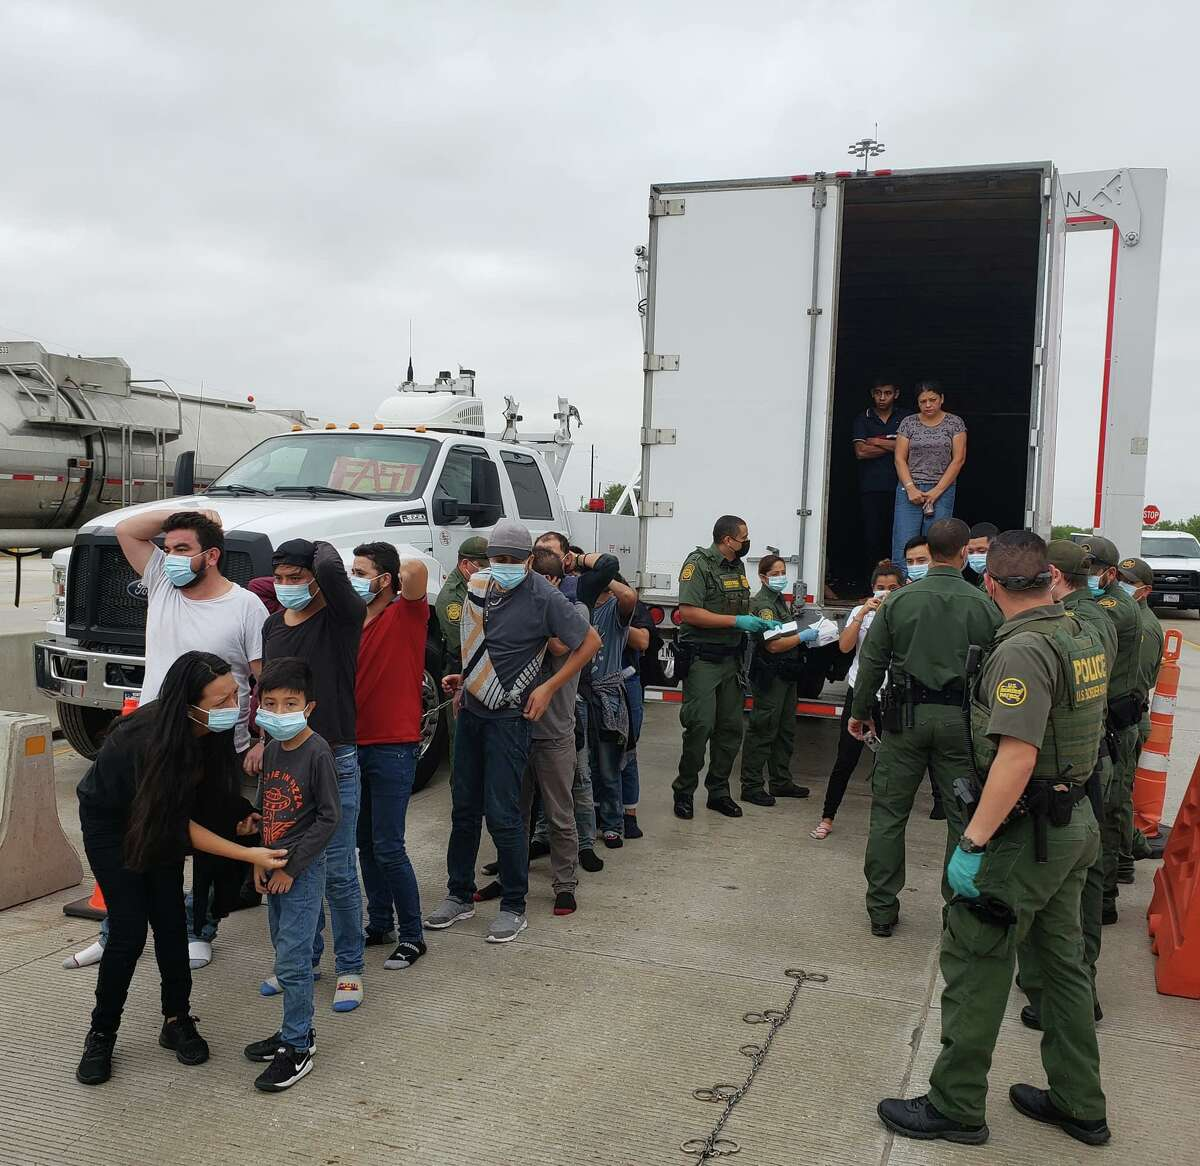 U.S. Border Patrol said that a mother and son were found inside a trailer where more than 40 migrants were discovered.